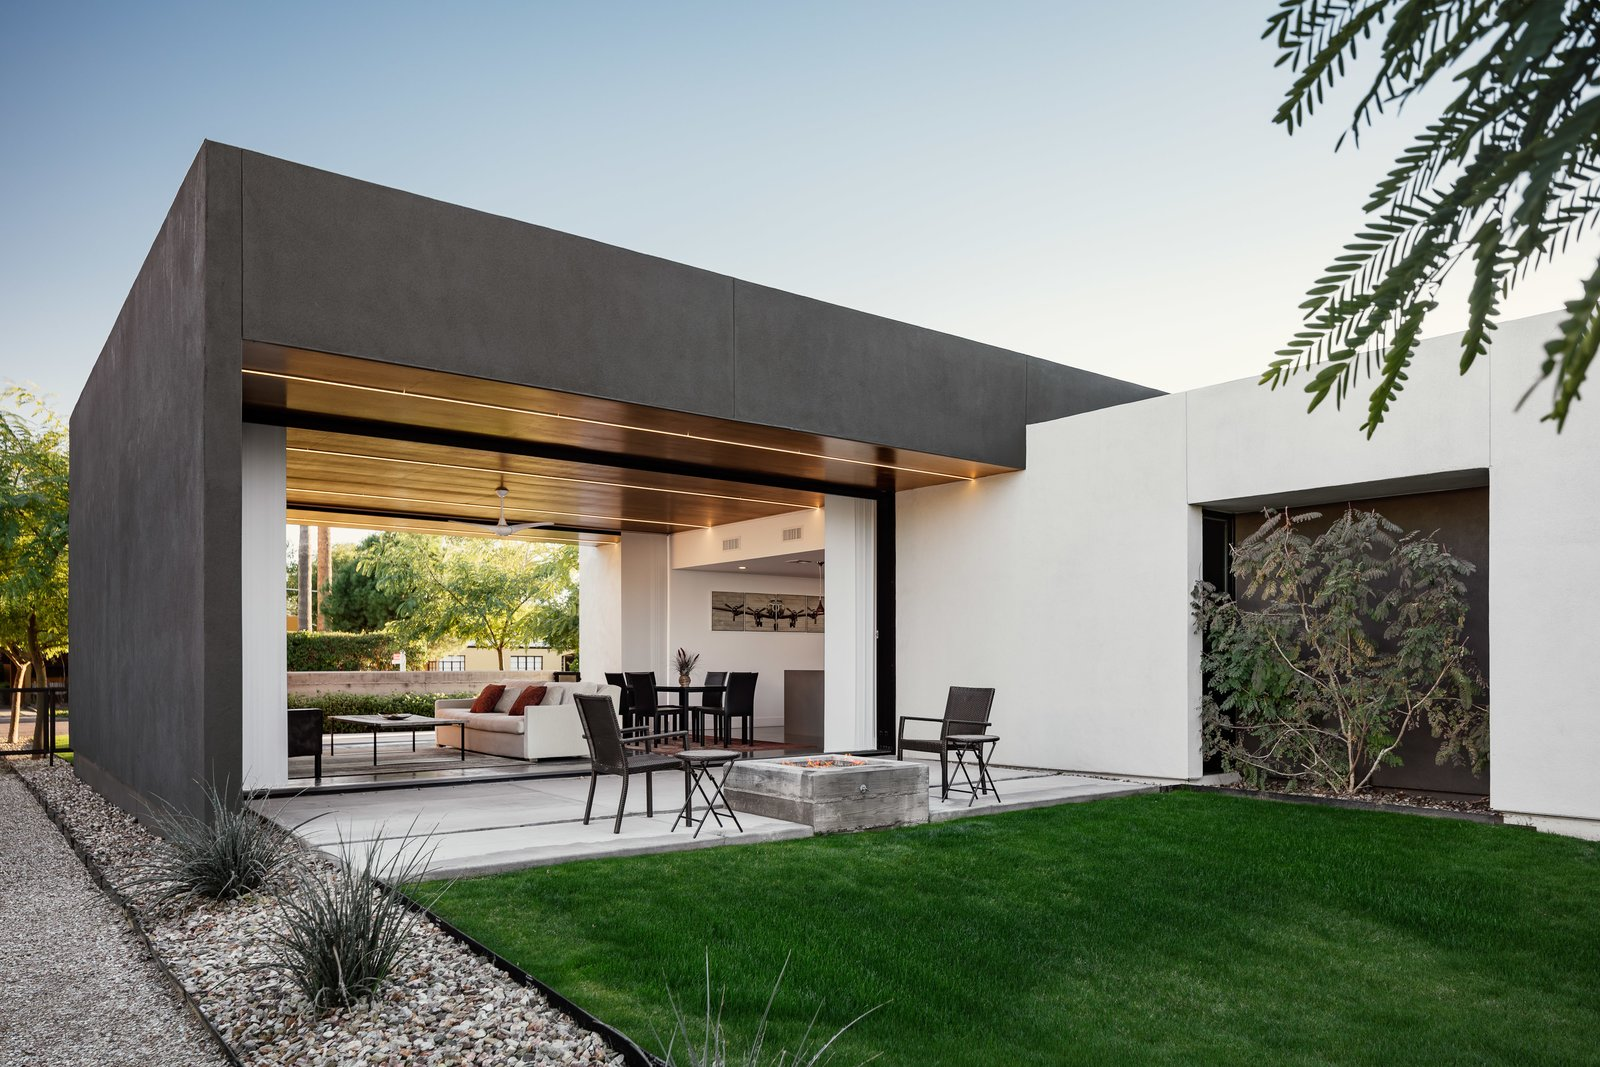 A board formed concrete fire pit draws you out to the back patio from the open living space Tagged: Concrete Patio, Porch, Deck, Front Yard, Trees, Ceiling Lighting, Concrete Floor, Back Yard, Grass, Exterior, and Stucco Siding Material.  Link House by The Ranch Mine